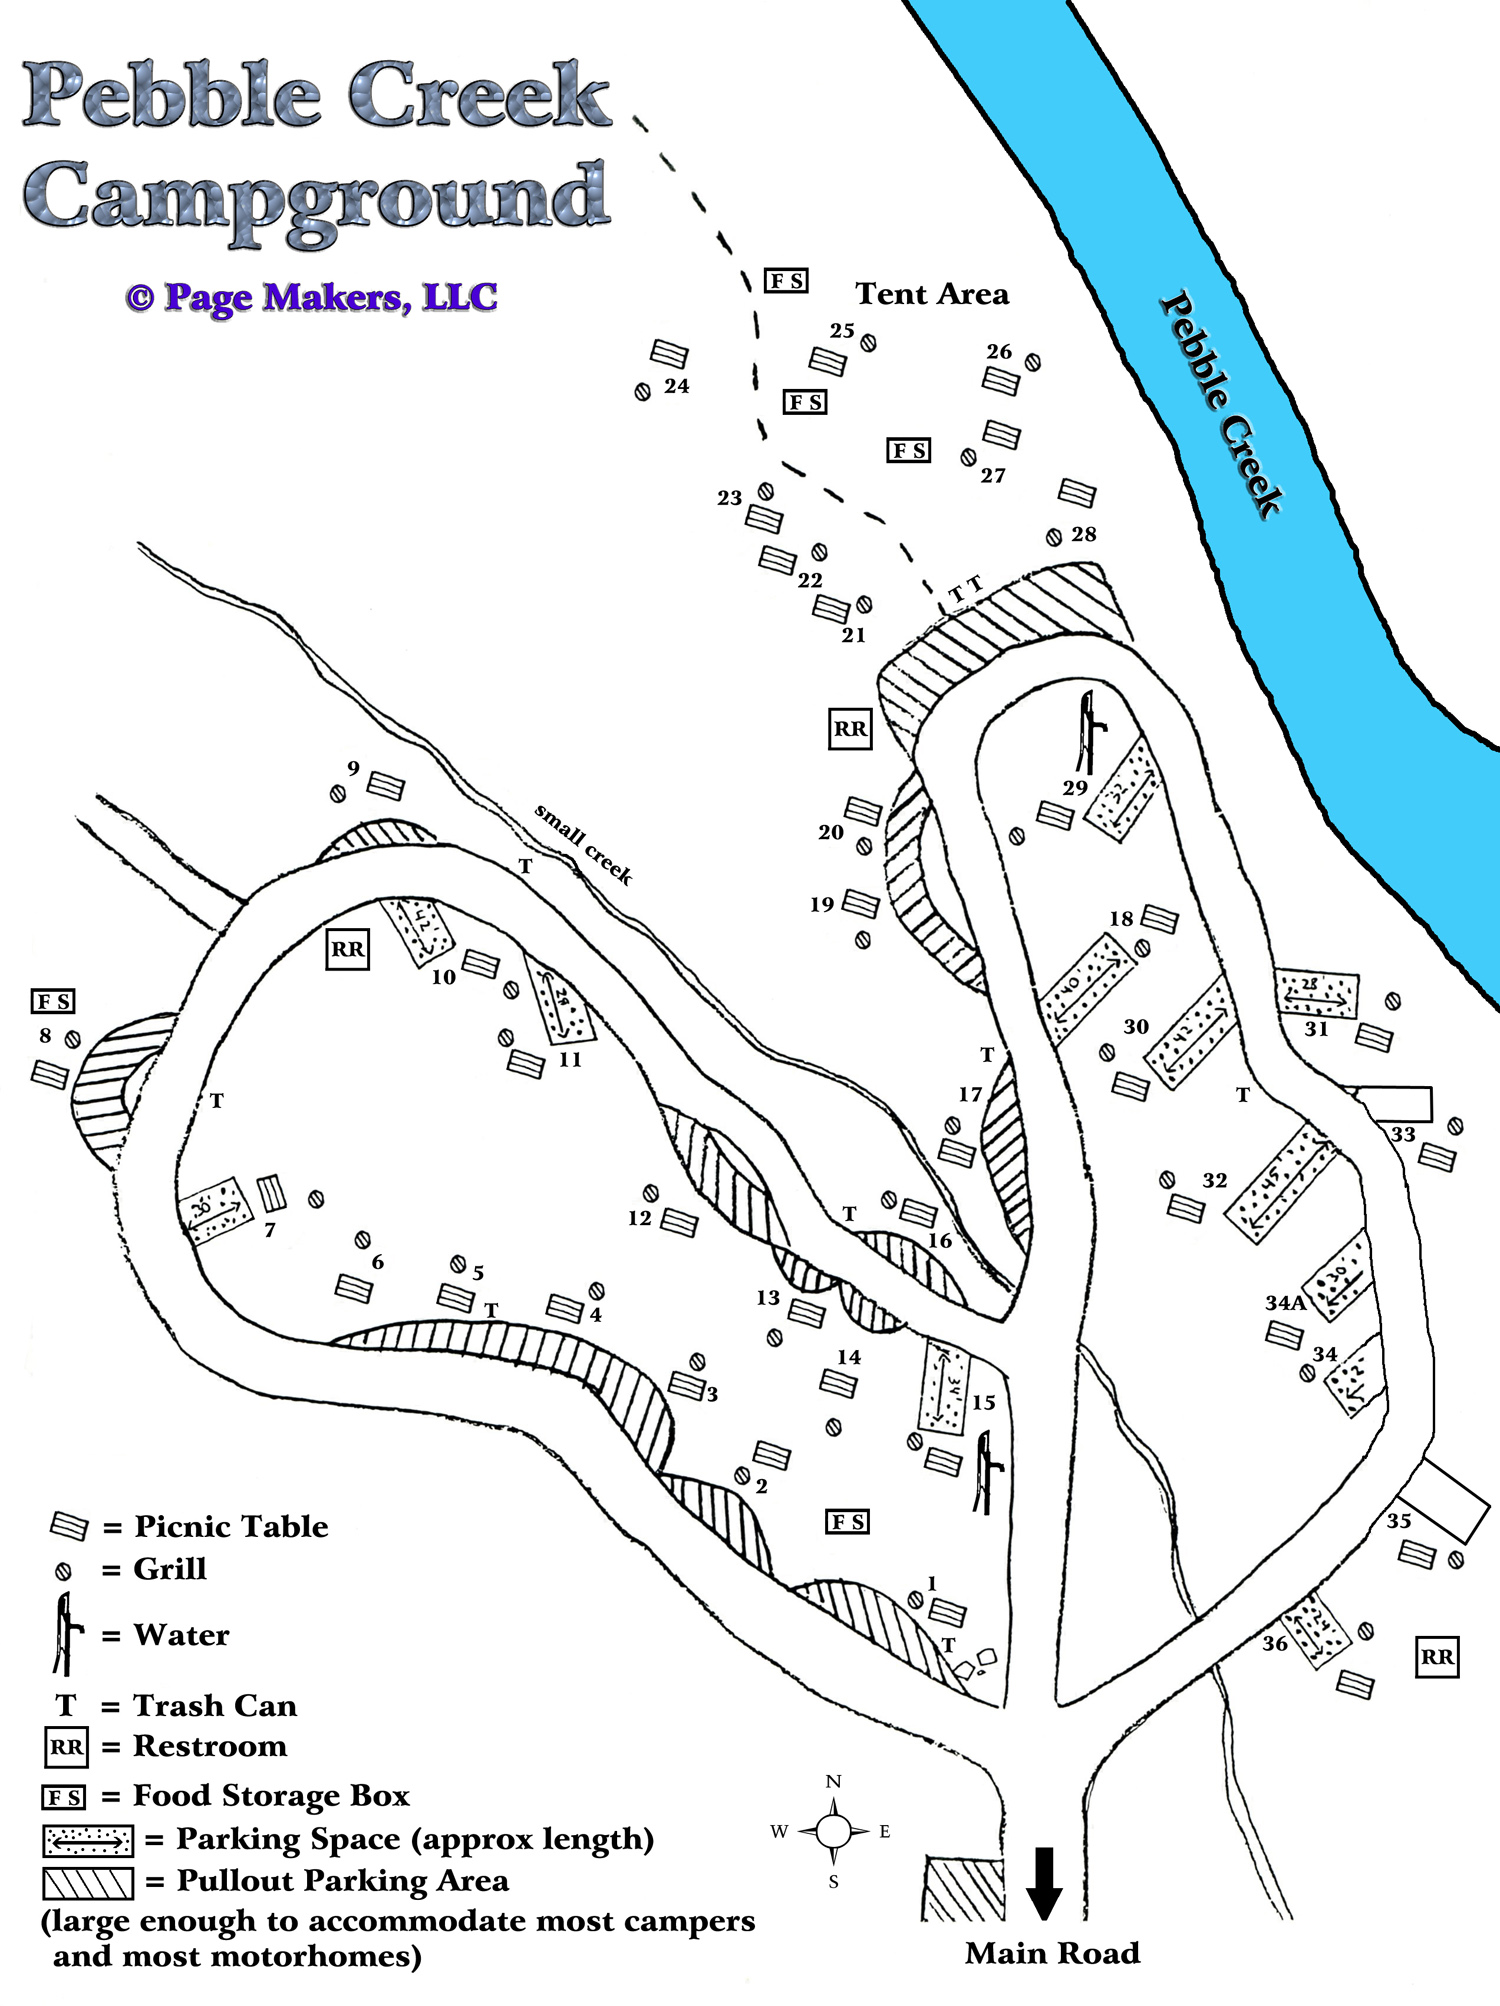 Pebble Creek Campground Map, Pictures and Video Yellowstone National on bear lodge map, slough creek yellowstone map, thorofare wilderness map,